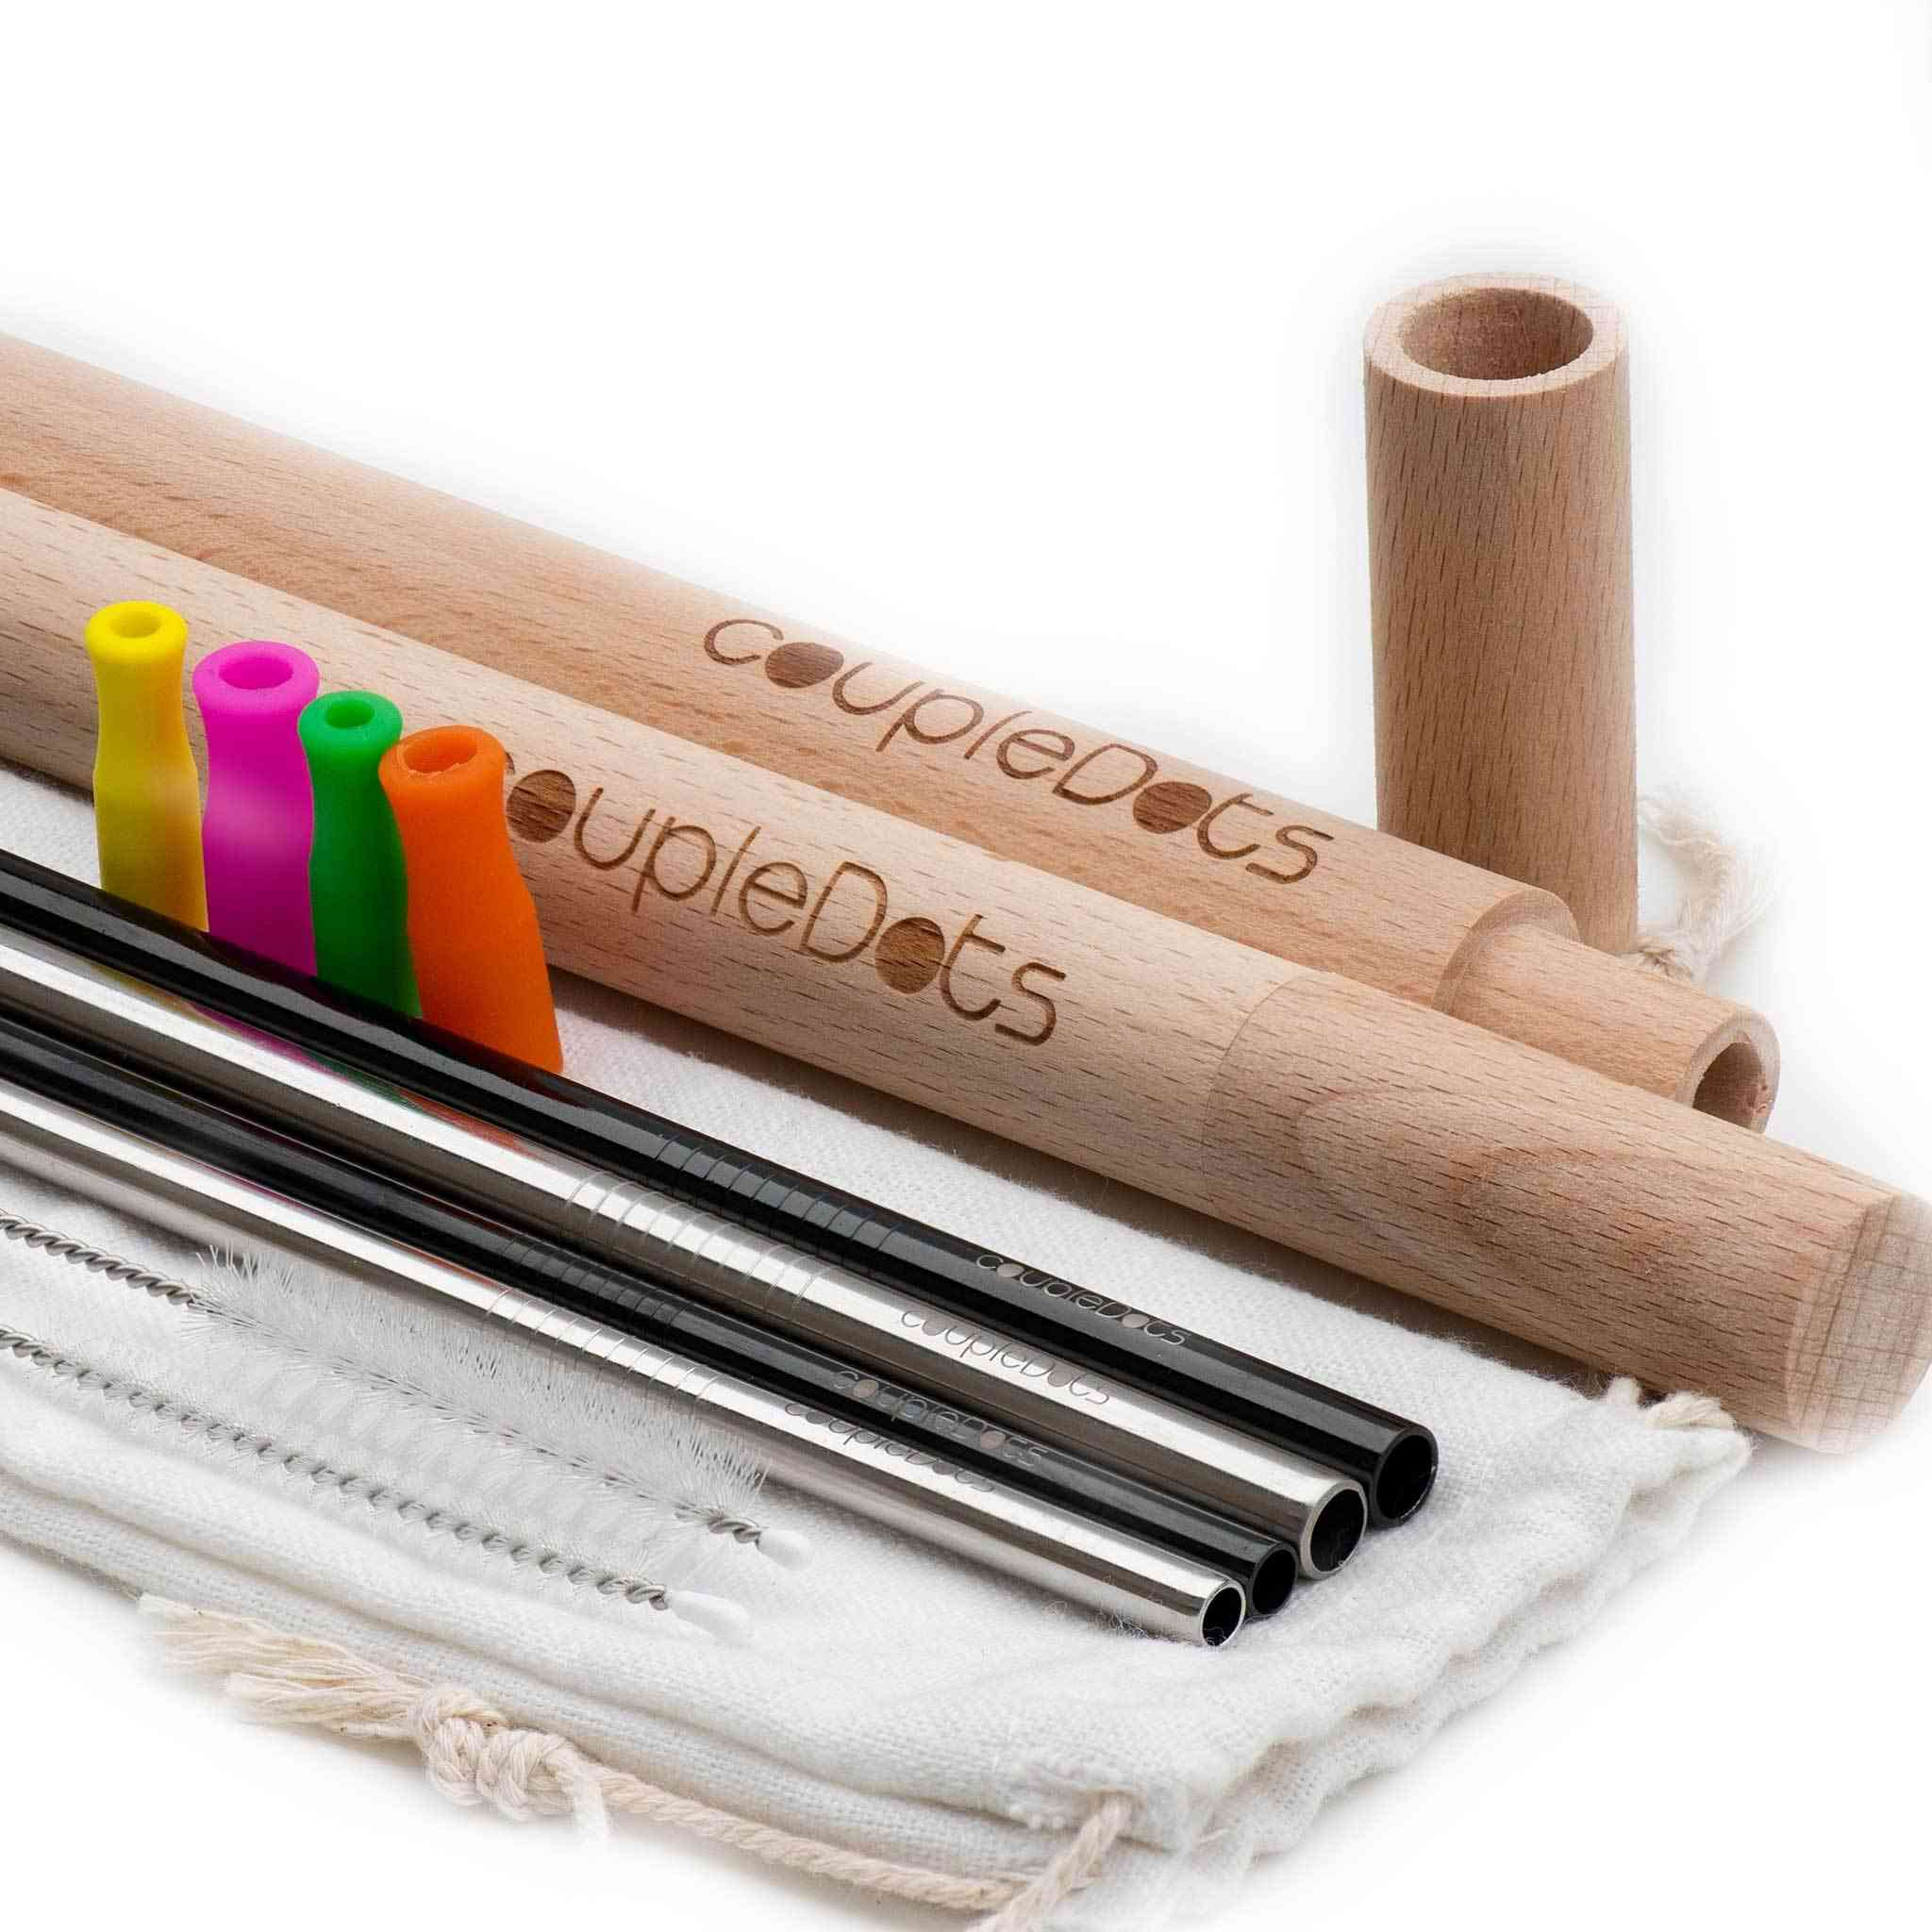 Stainless Steel Drinking Straws With Wooden Case & Silicone Tips